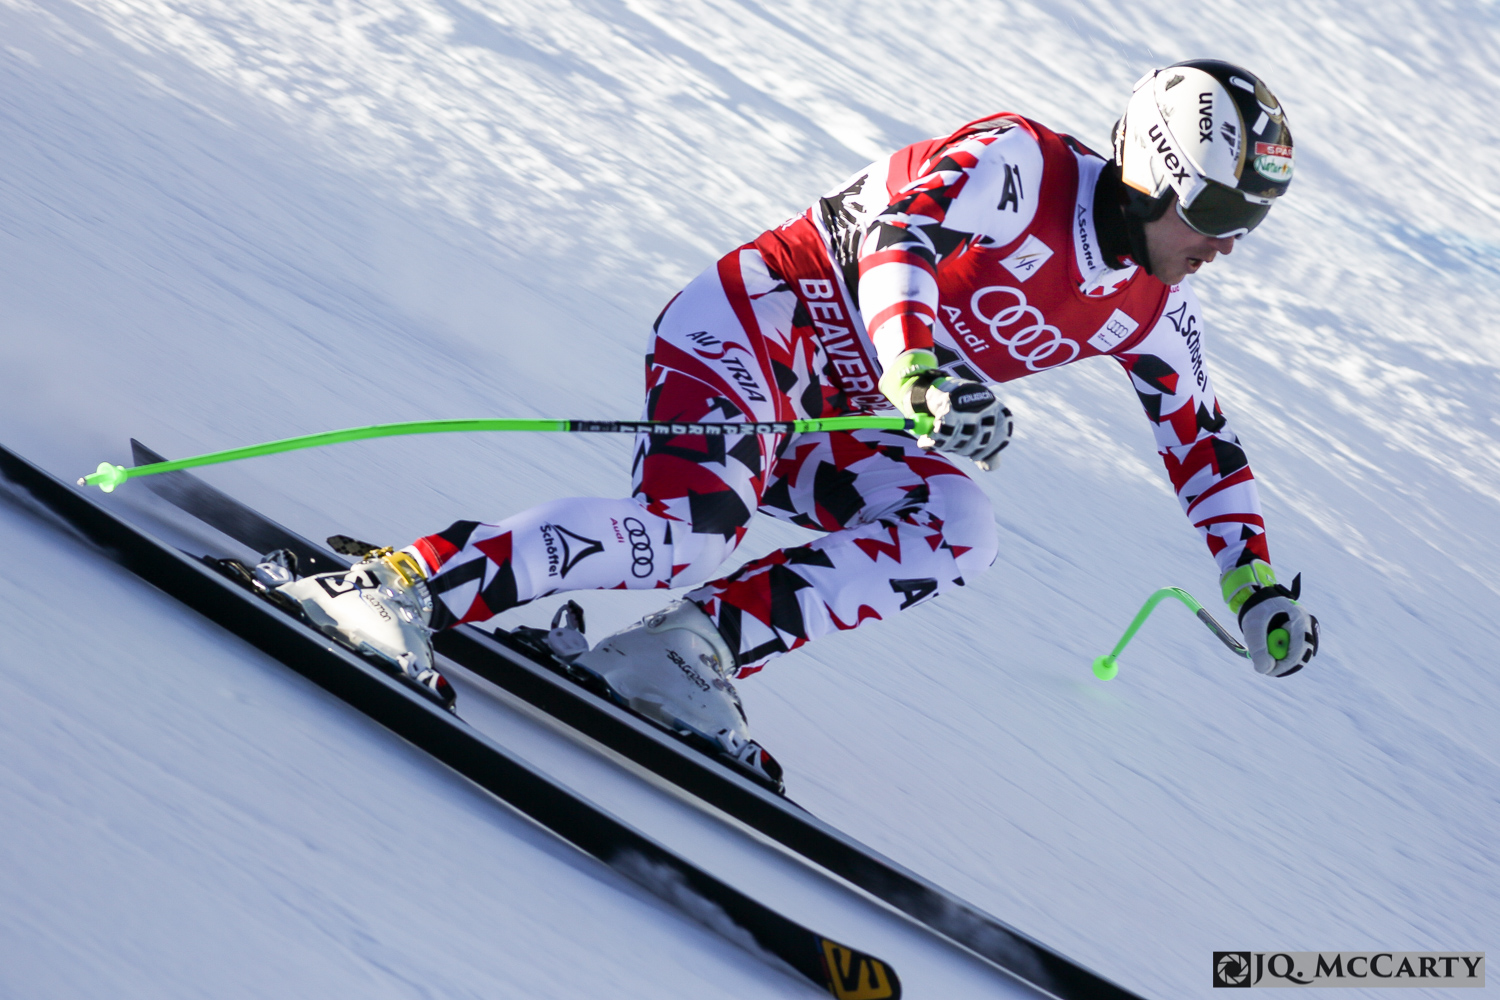 Austria's Hannes Reichelt soars through the Talon's section of the Birds of Prey World Cup race course during the second day of training Wednesday in Beaver Creek. Reichelt finished third fastest on the day with a time of 1 minute, 43.38 seconds.